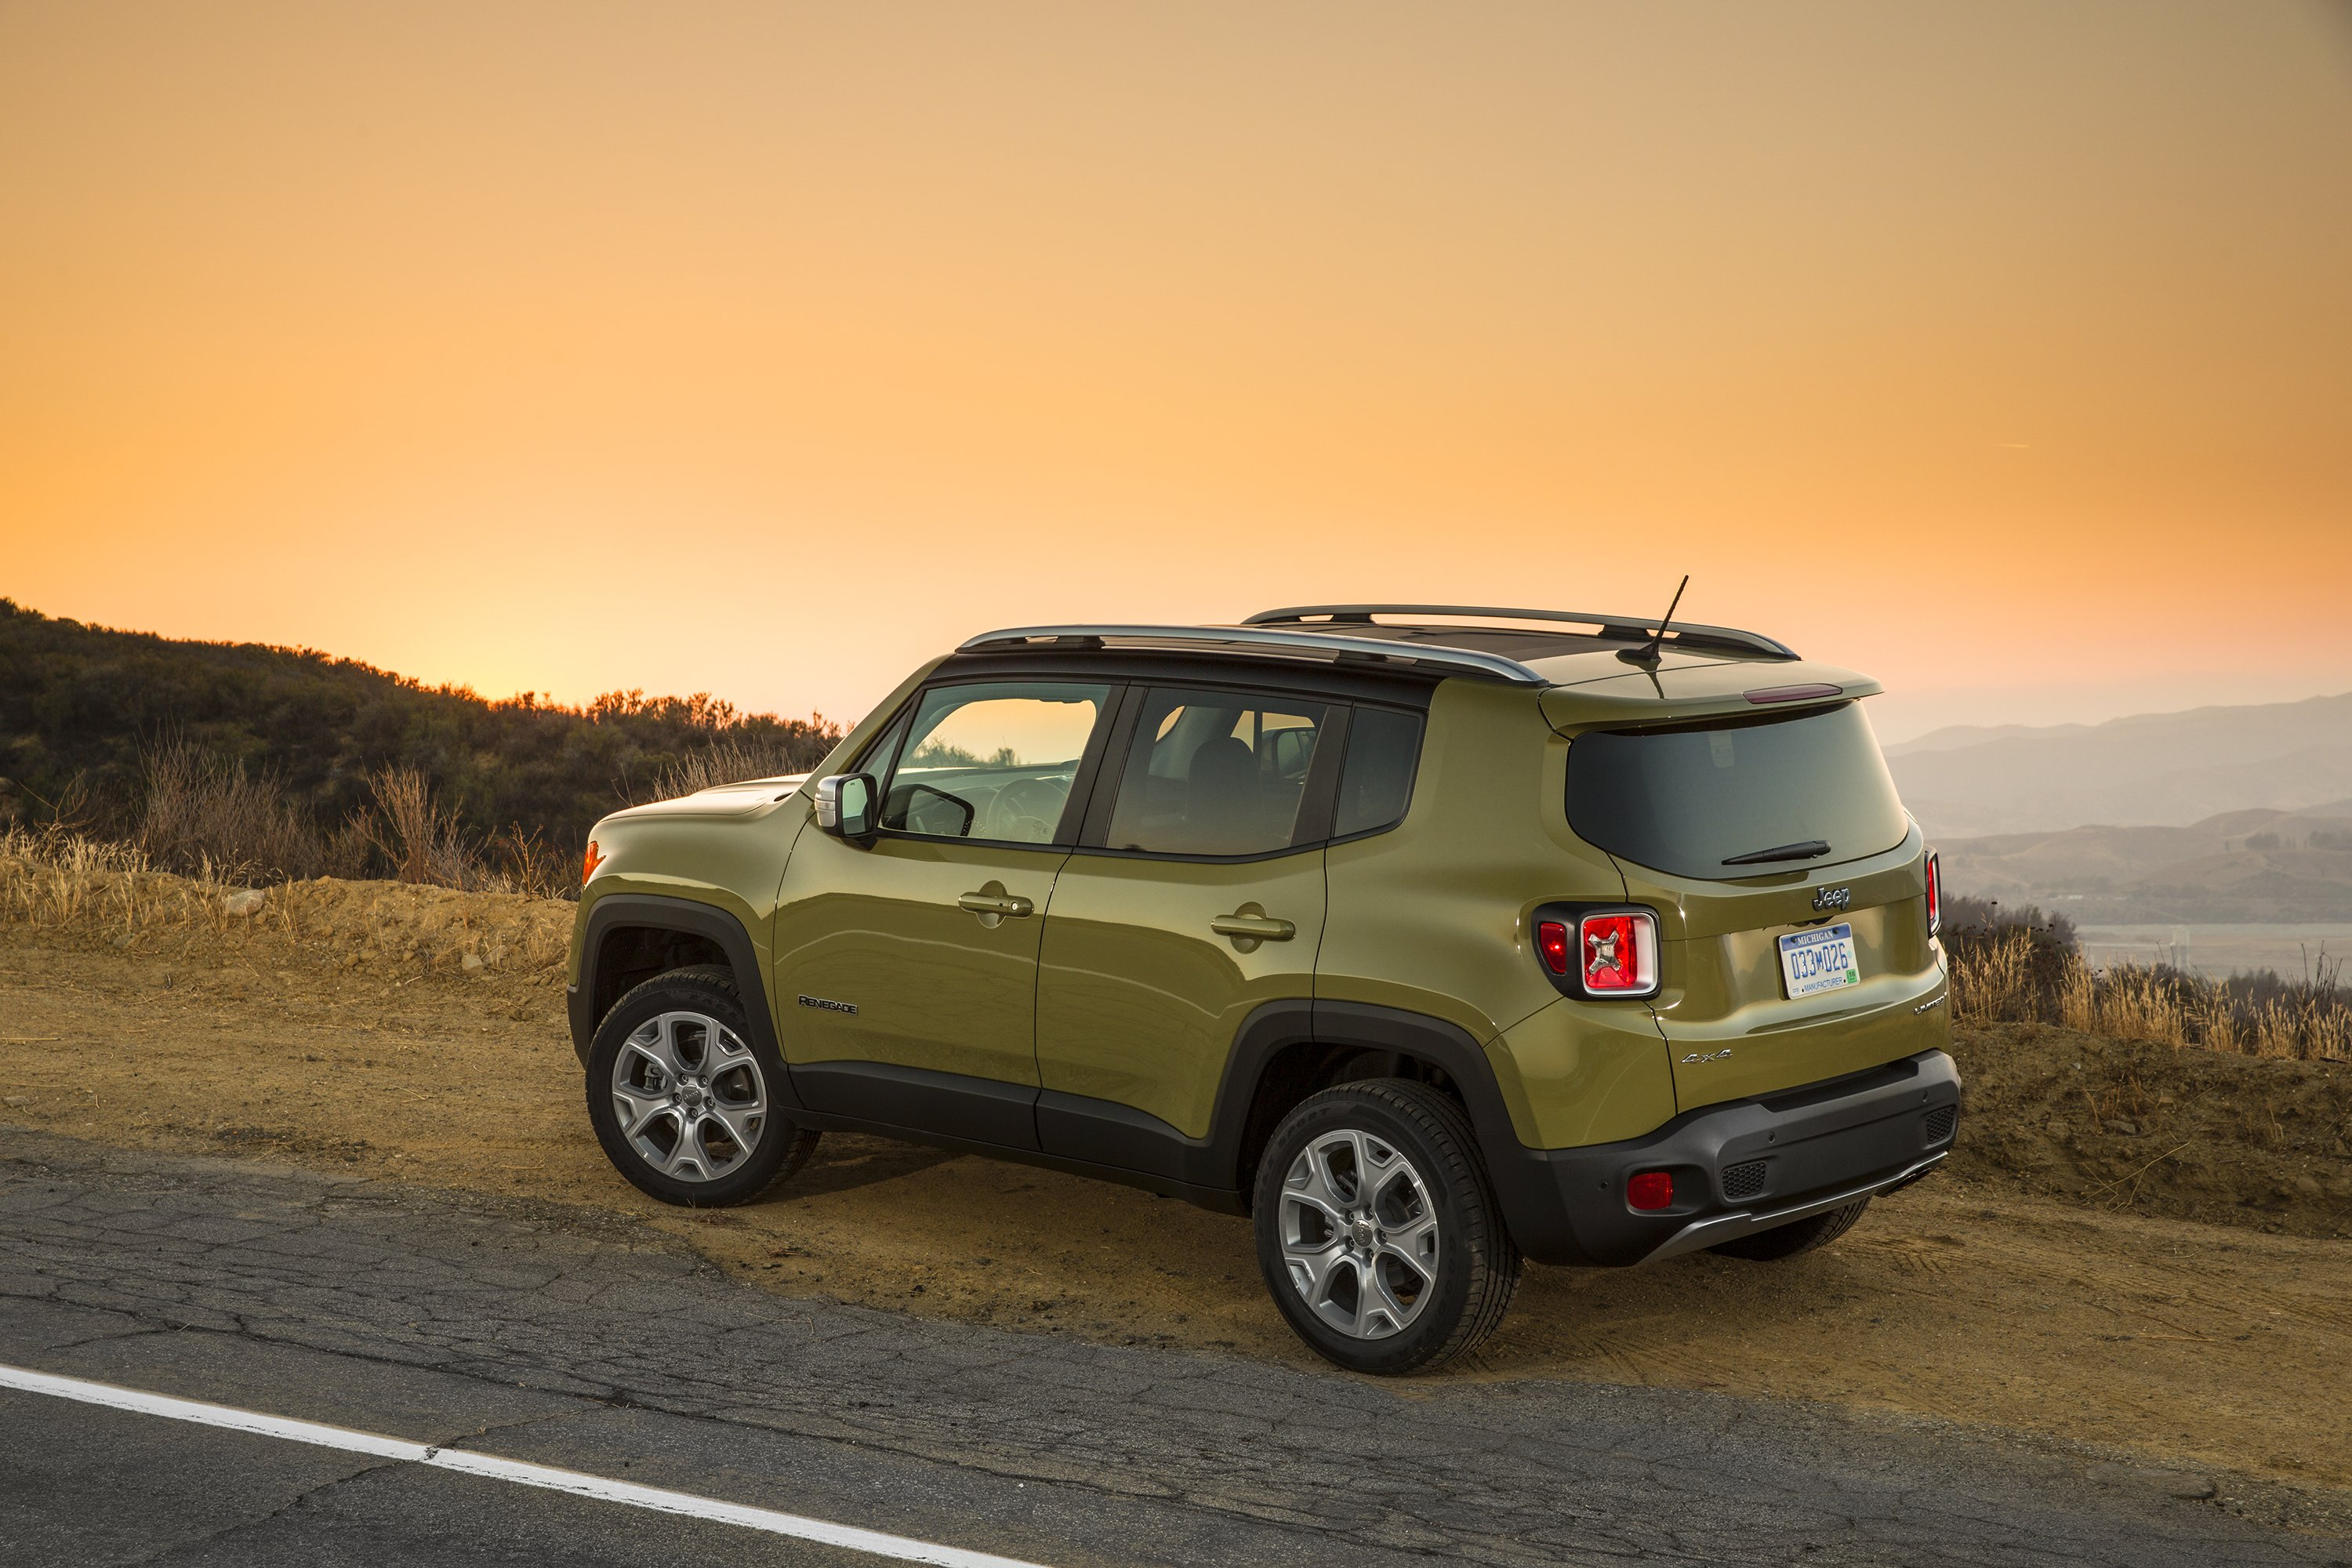 2015 jeep renegade limited suv 4x4 wallpaper 3000x2000 618810 wallpaperup. Black Bedroom Furniture Sets. Home Design Ideas